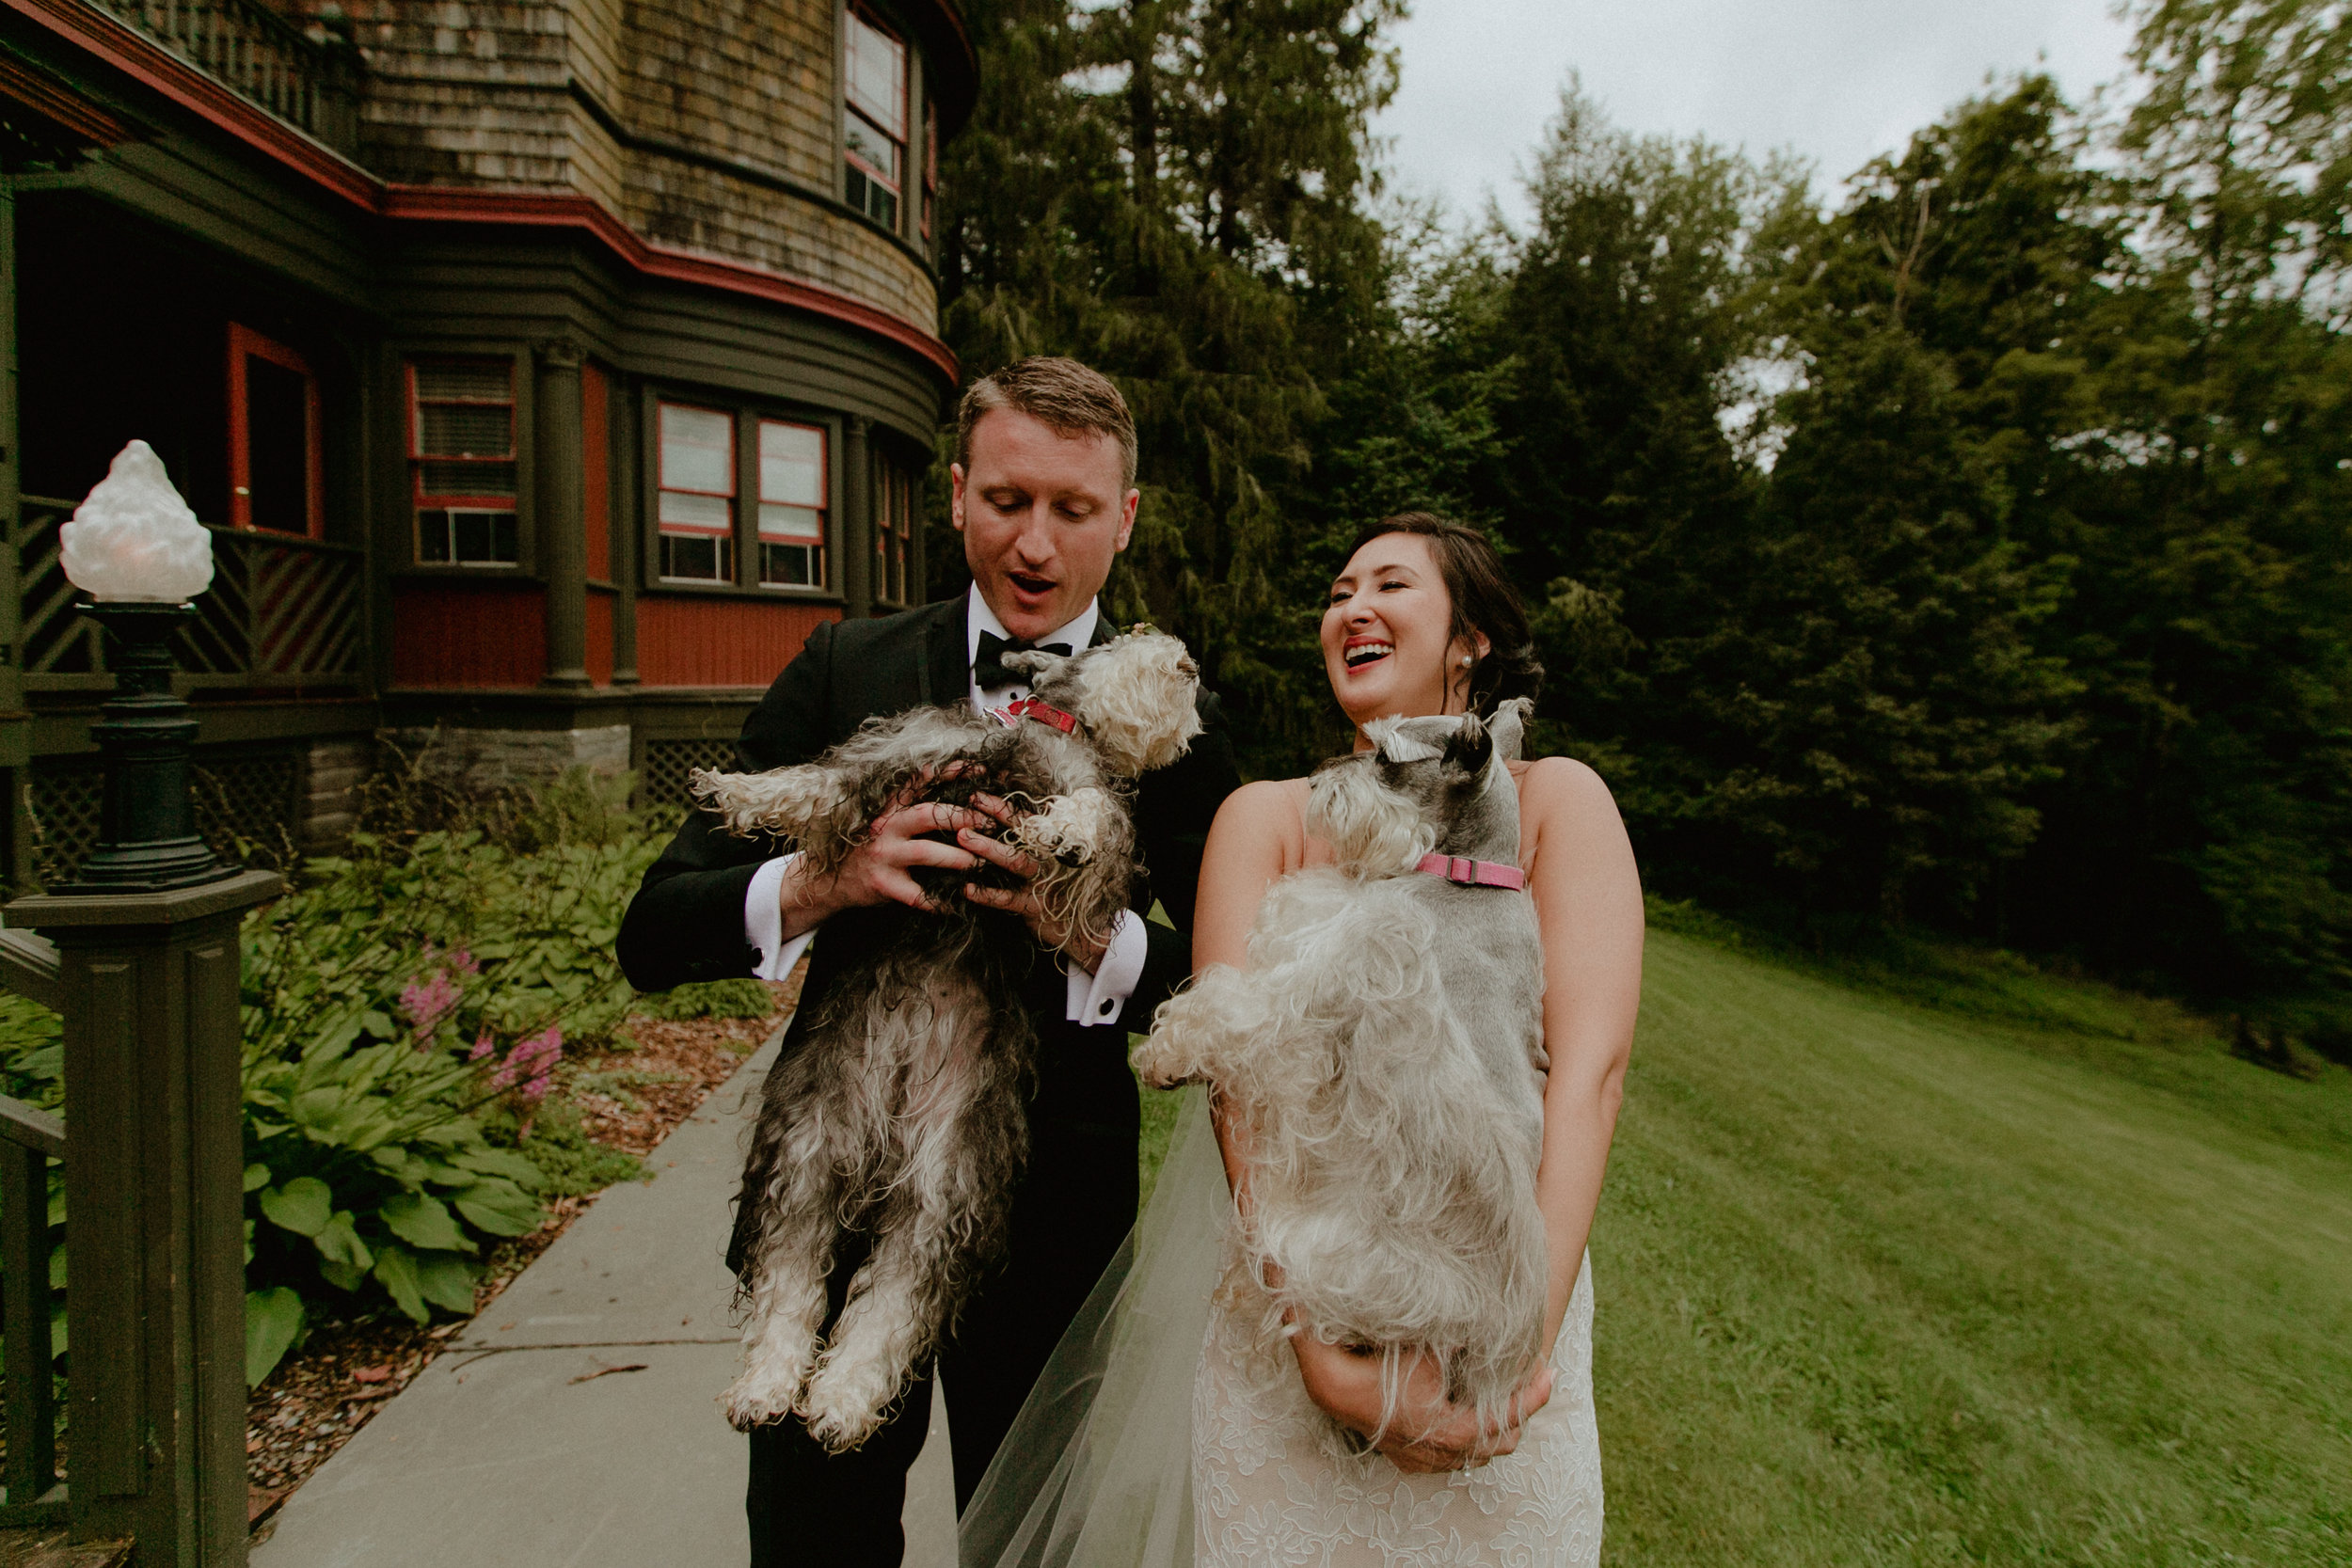 Fionna_and_Josh_Spillian_Wedding_2018_ChelliseMichaelPhotography